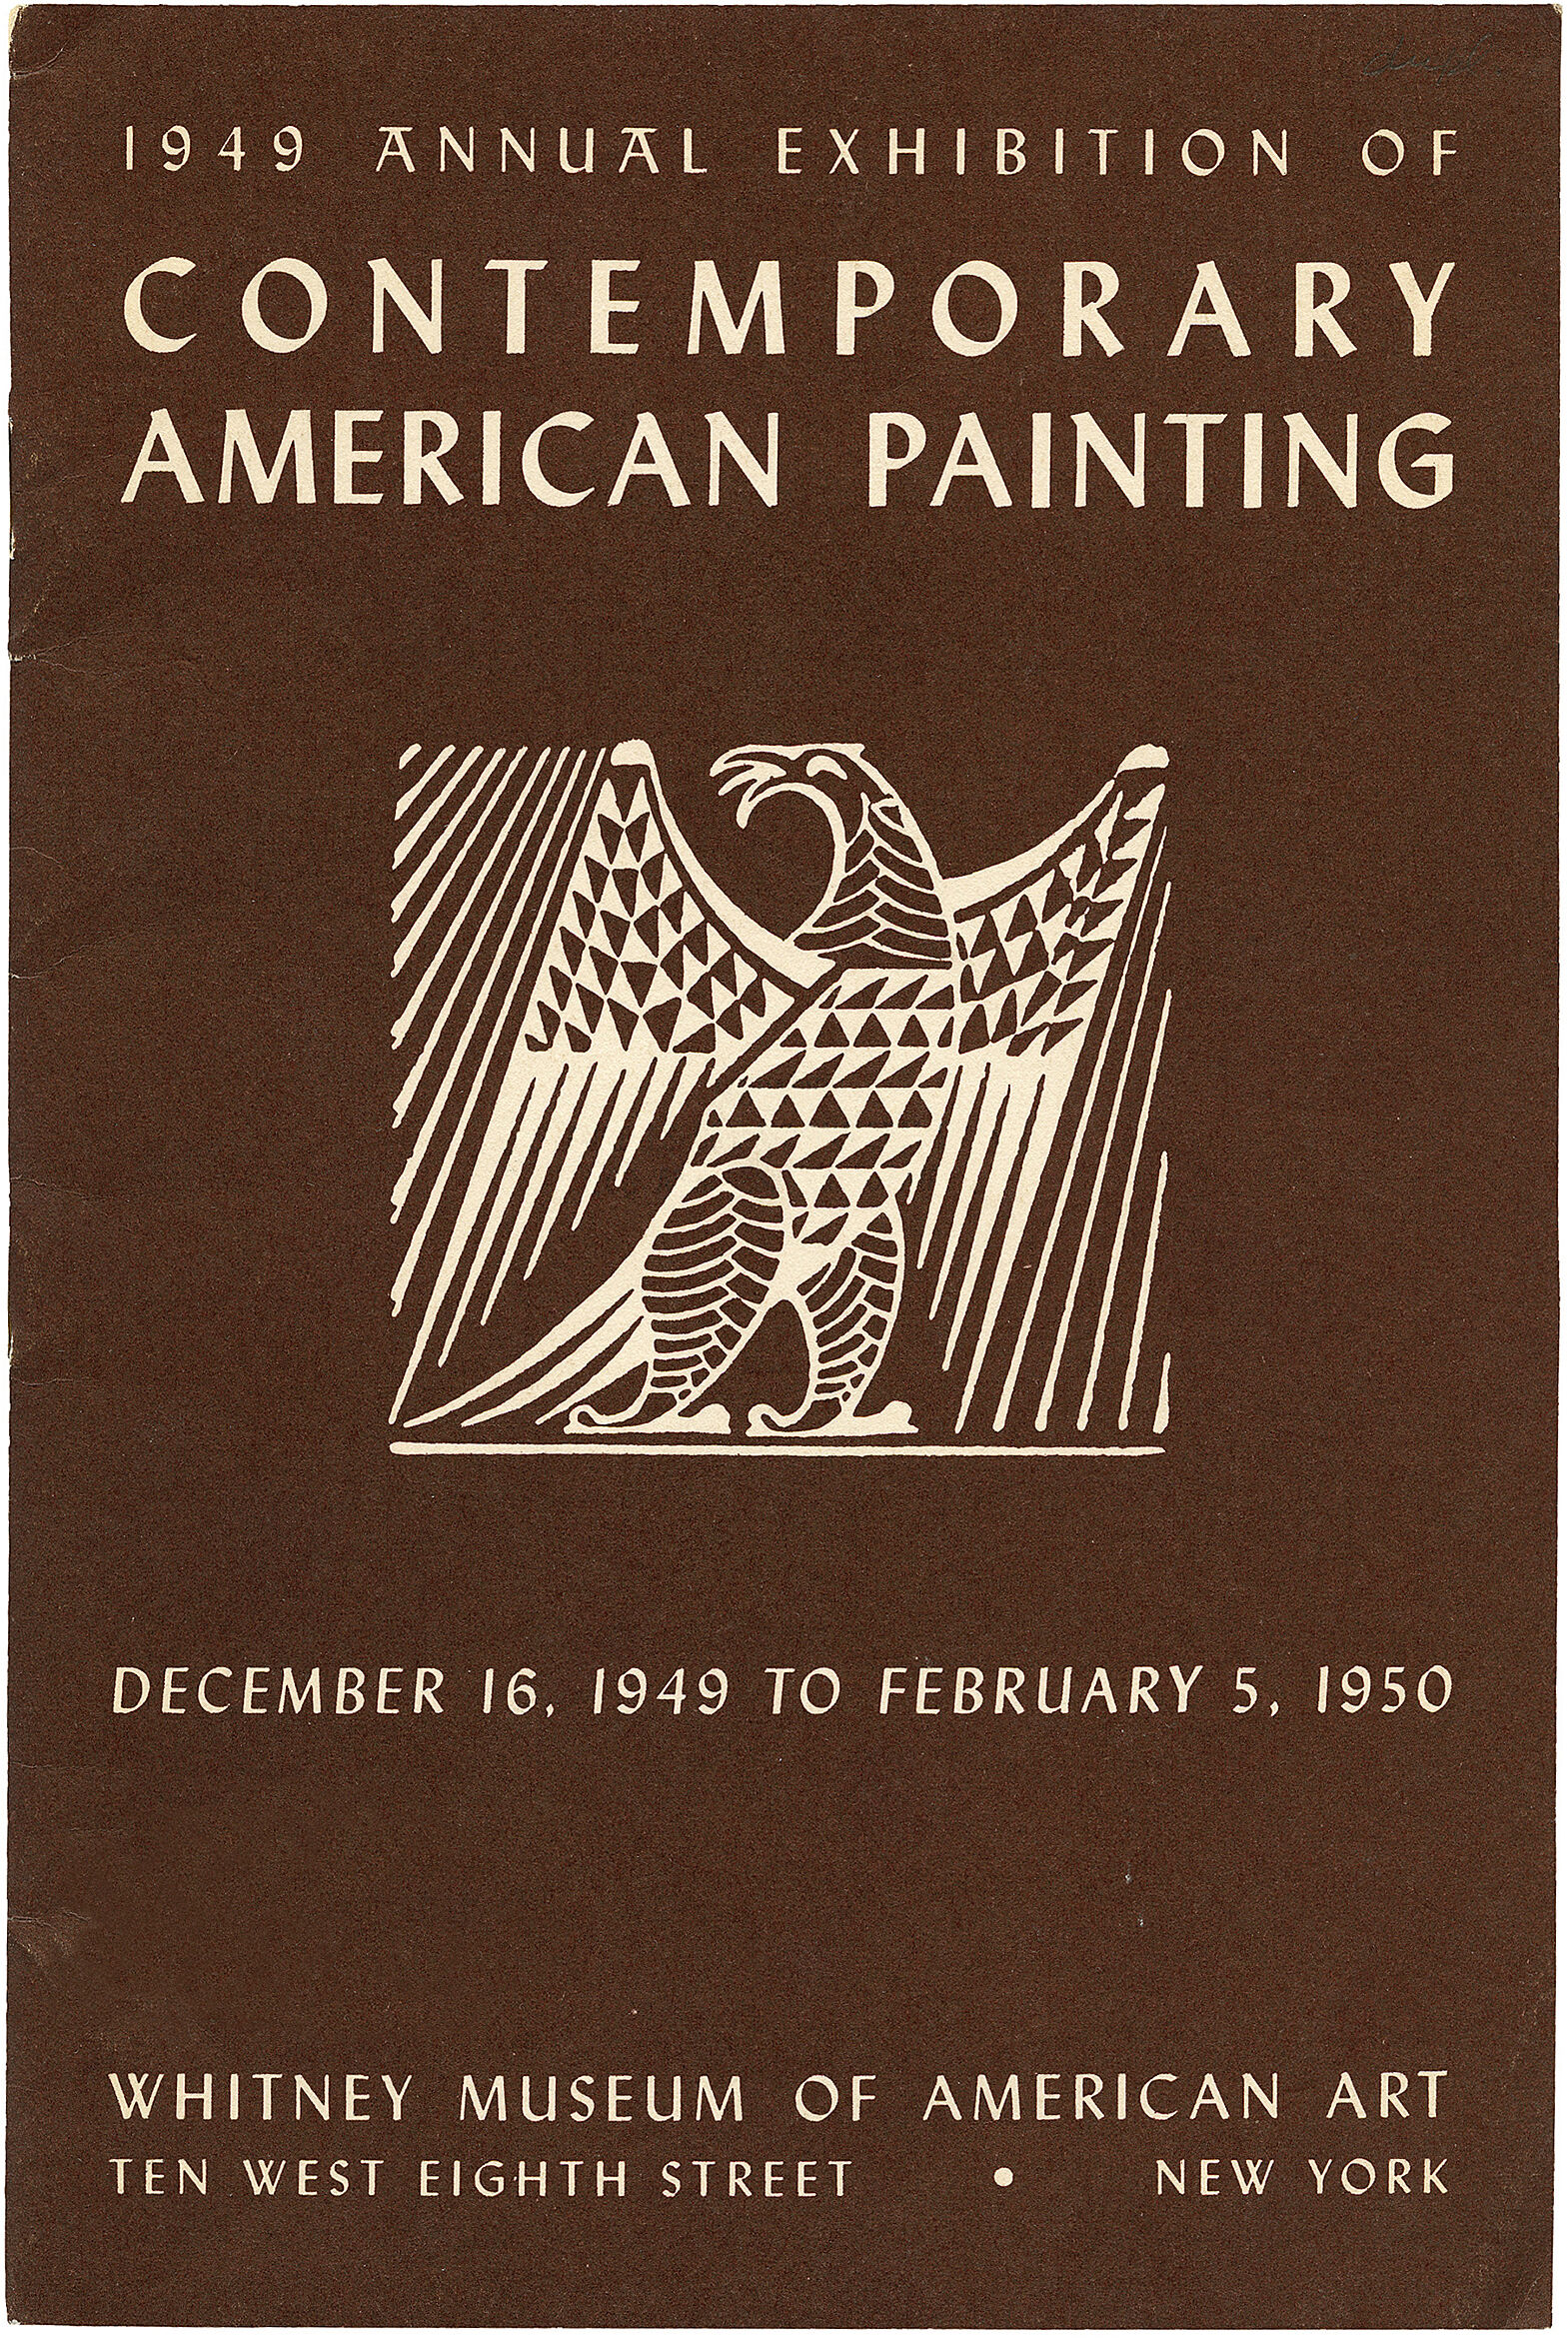 Cover for 1949 Annual Exhibition of Contemporary American Painting catalogue